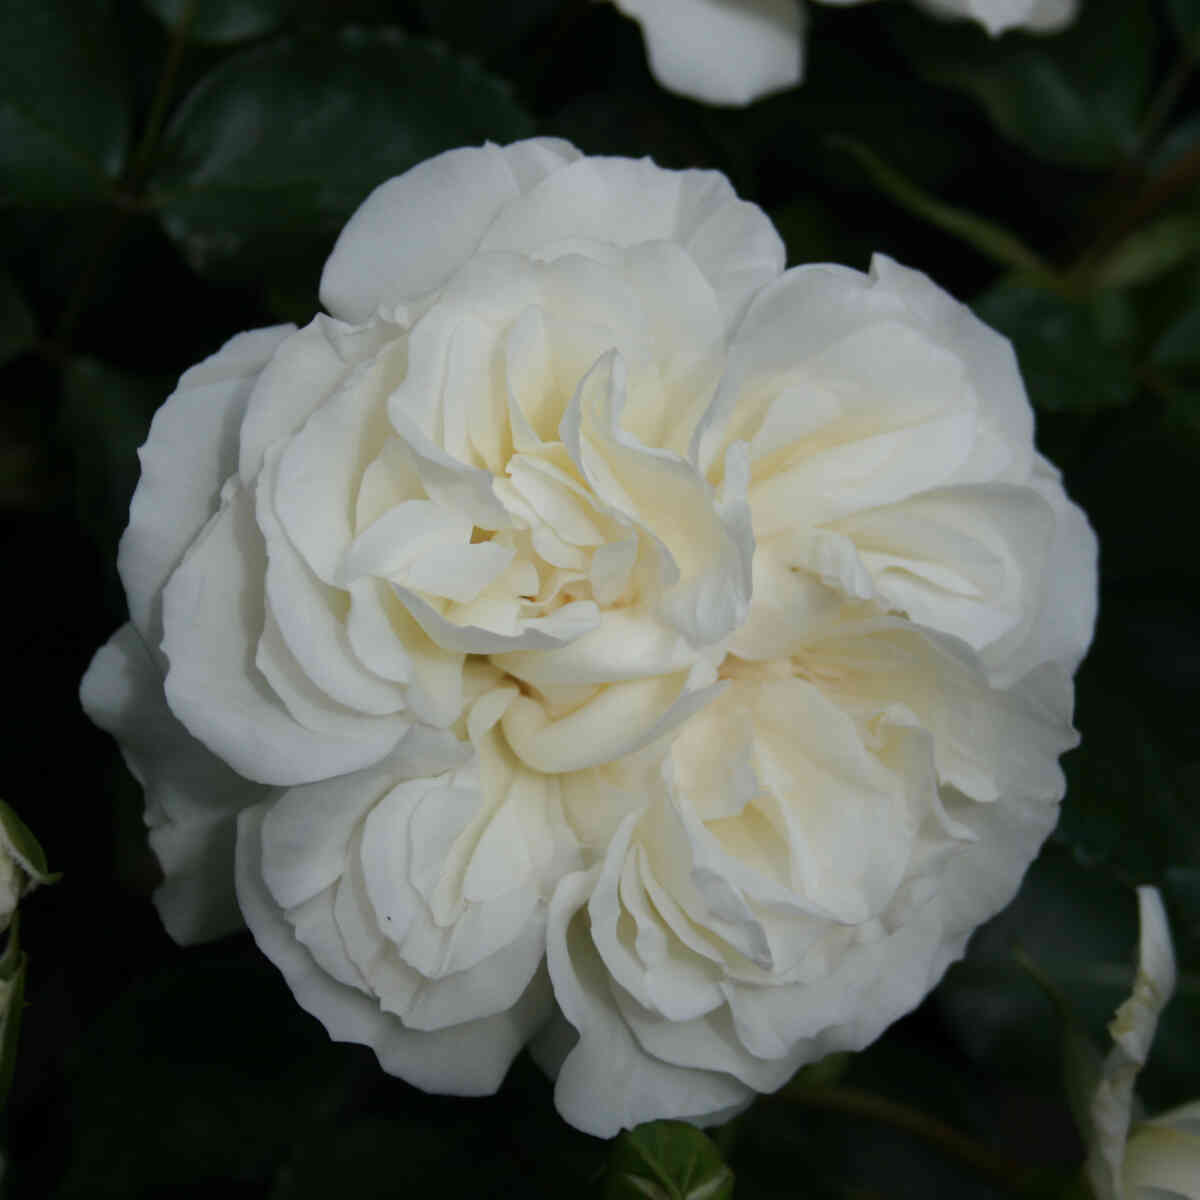 Rose 'White Meidiland'